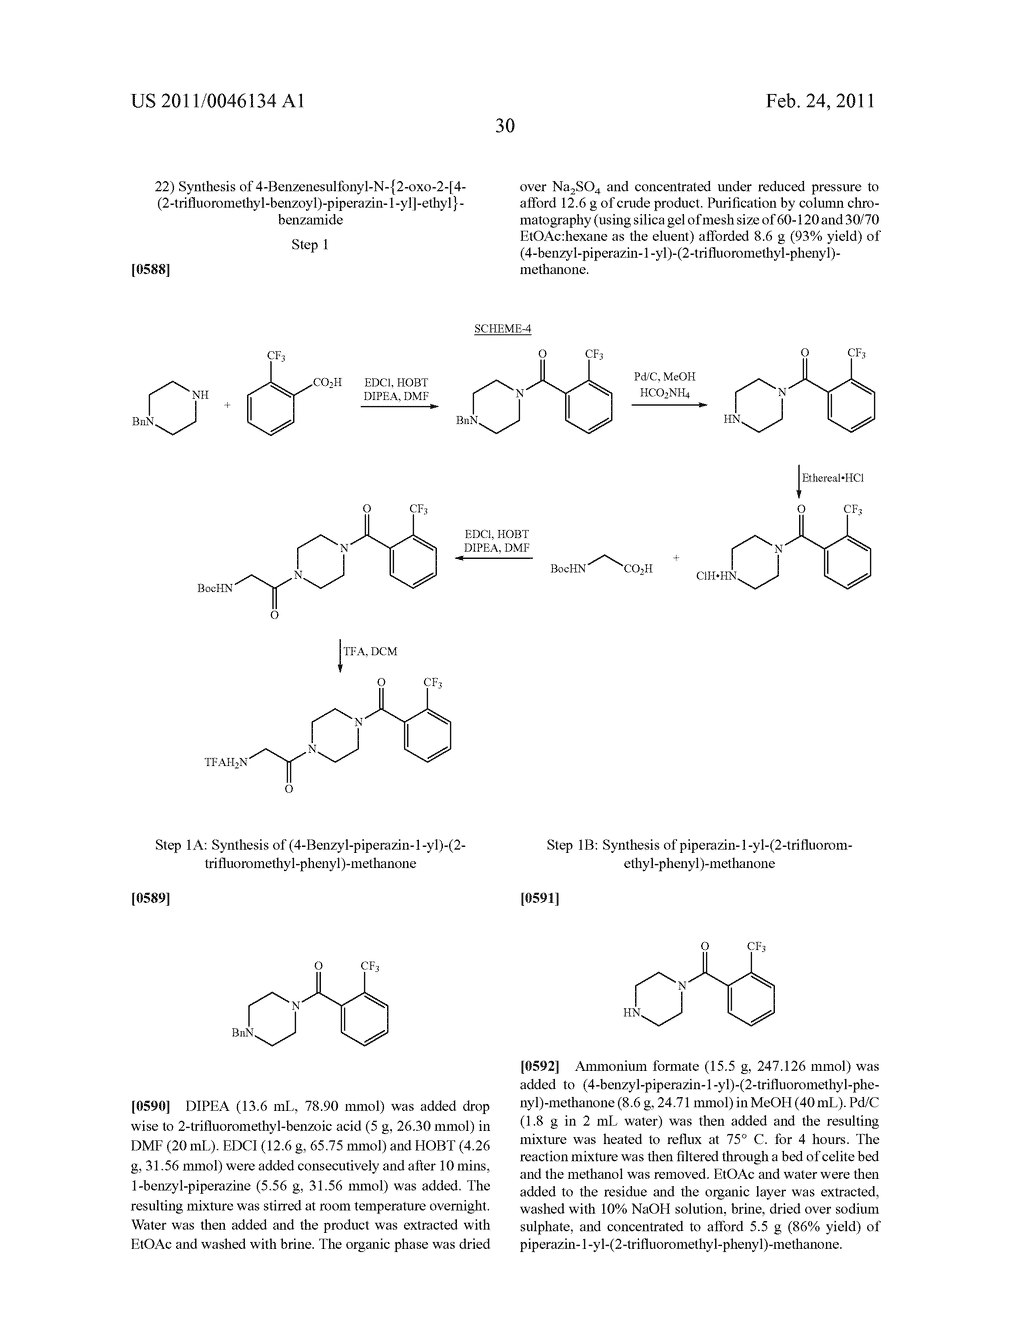 NOVEL PIPERAZINE DERIVATIVES AS INHIBITORS OF STEAROYL-CoA DESATURASE - diagram, schematic, and image 31